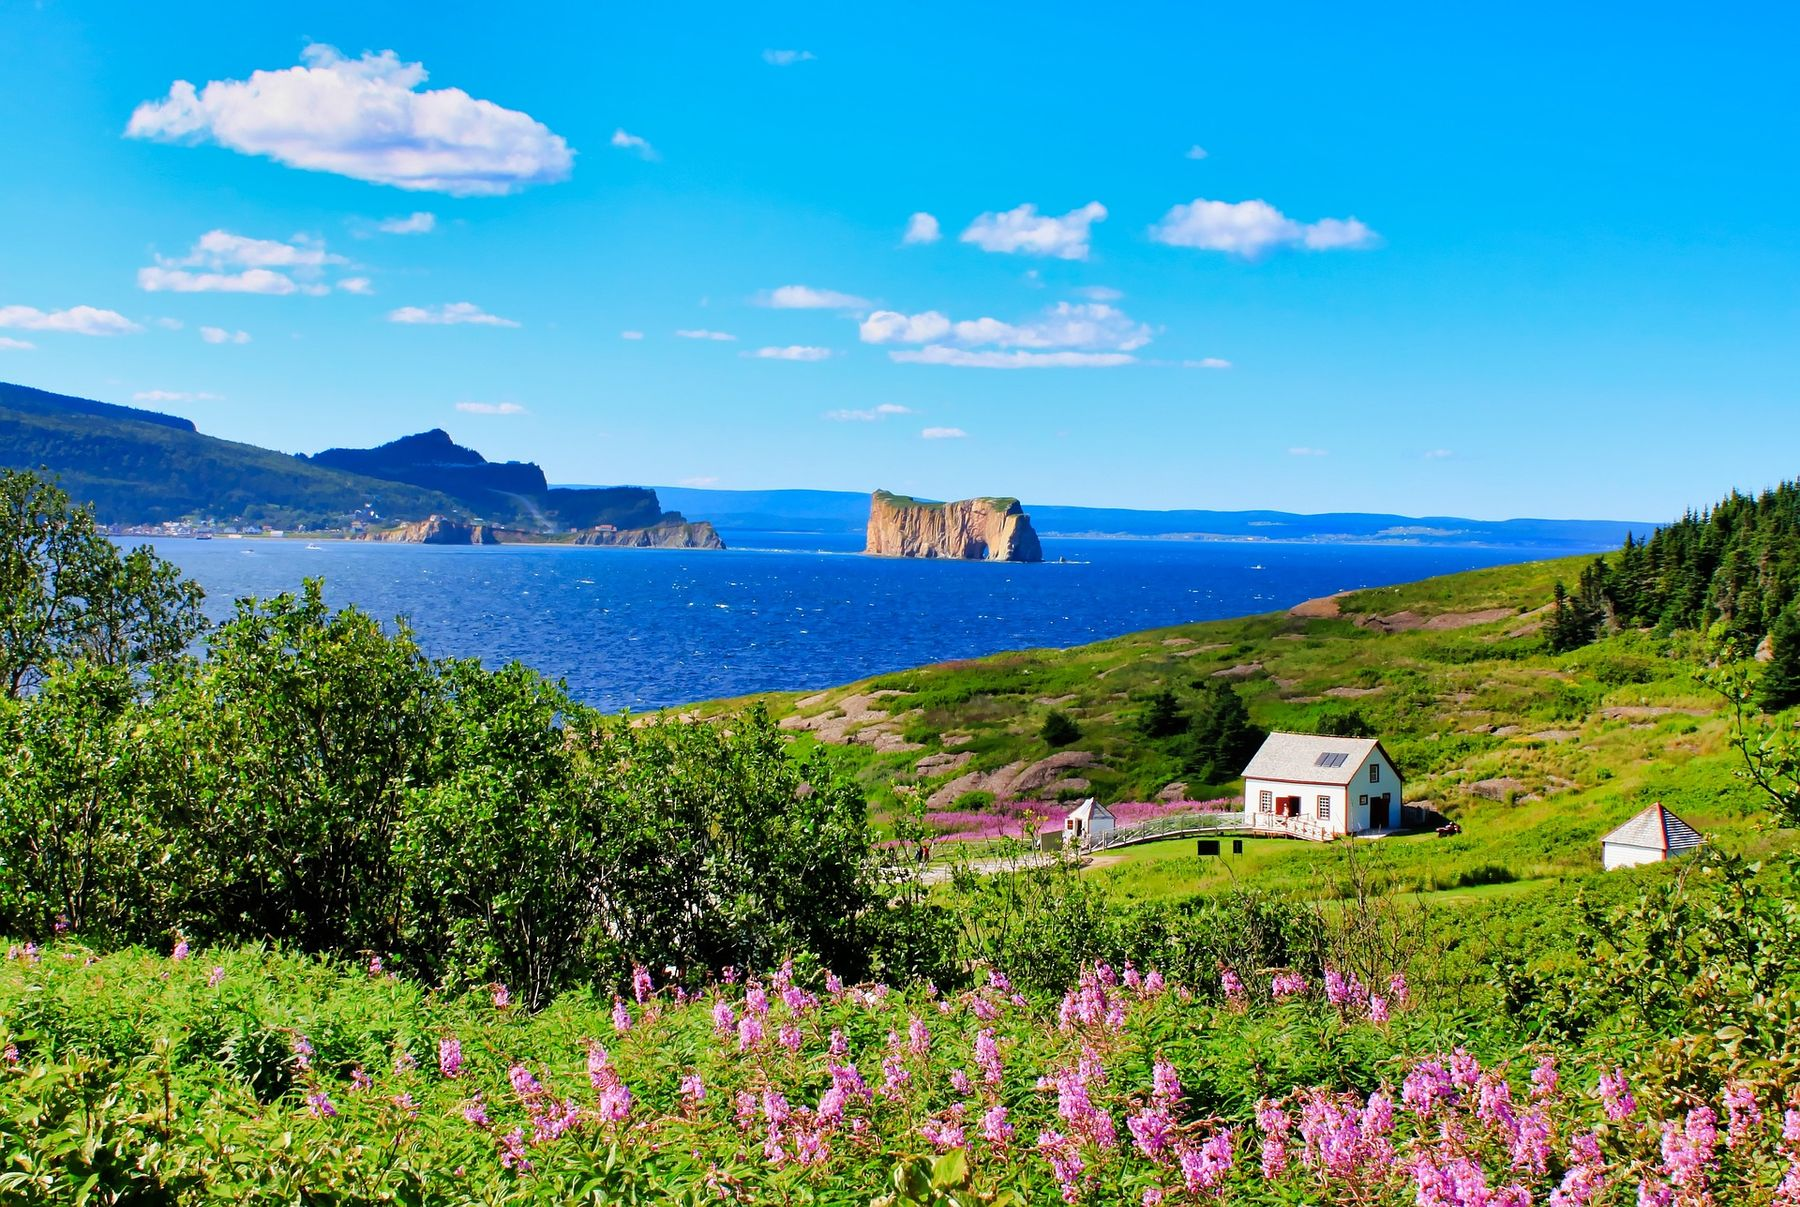 cliffside in the town of Gaspe on a sunny summer's day with the Rocher Perce in the distance